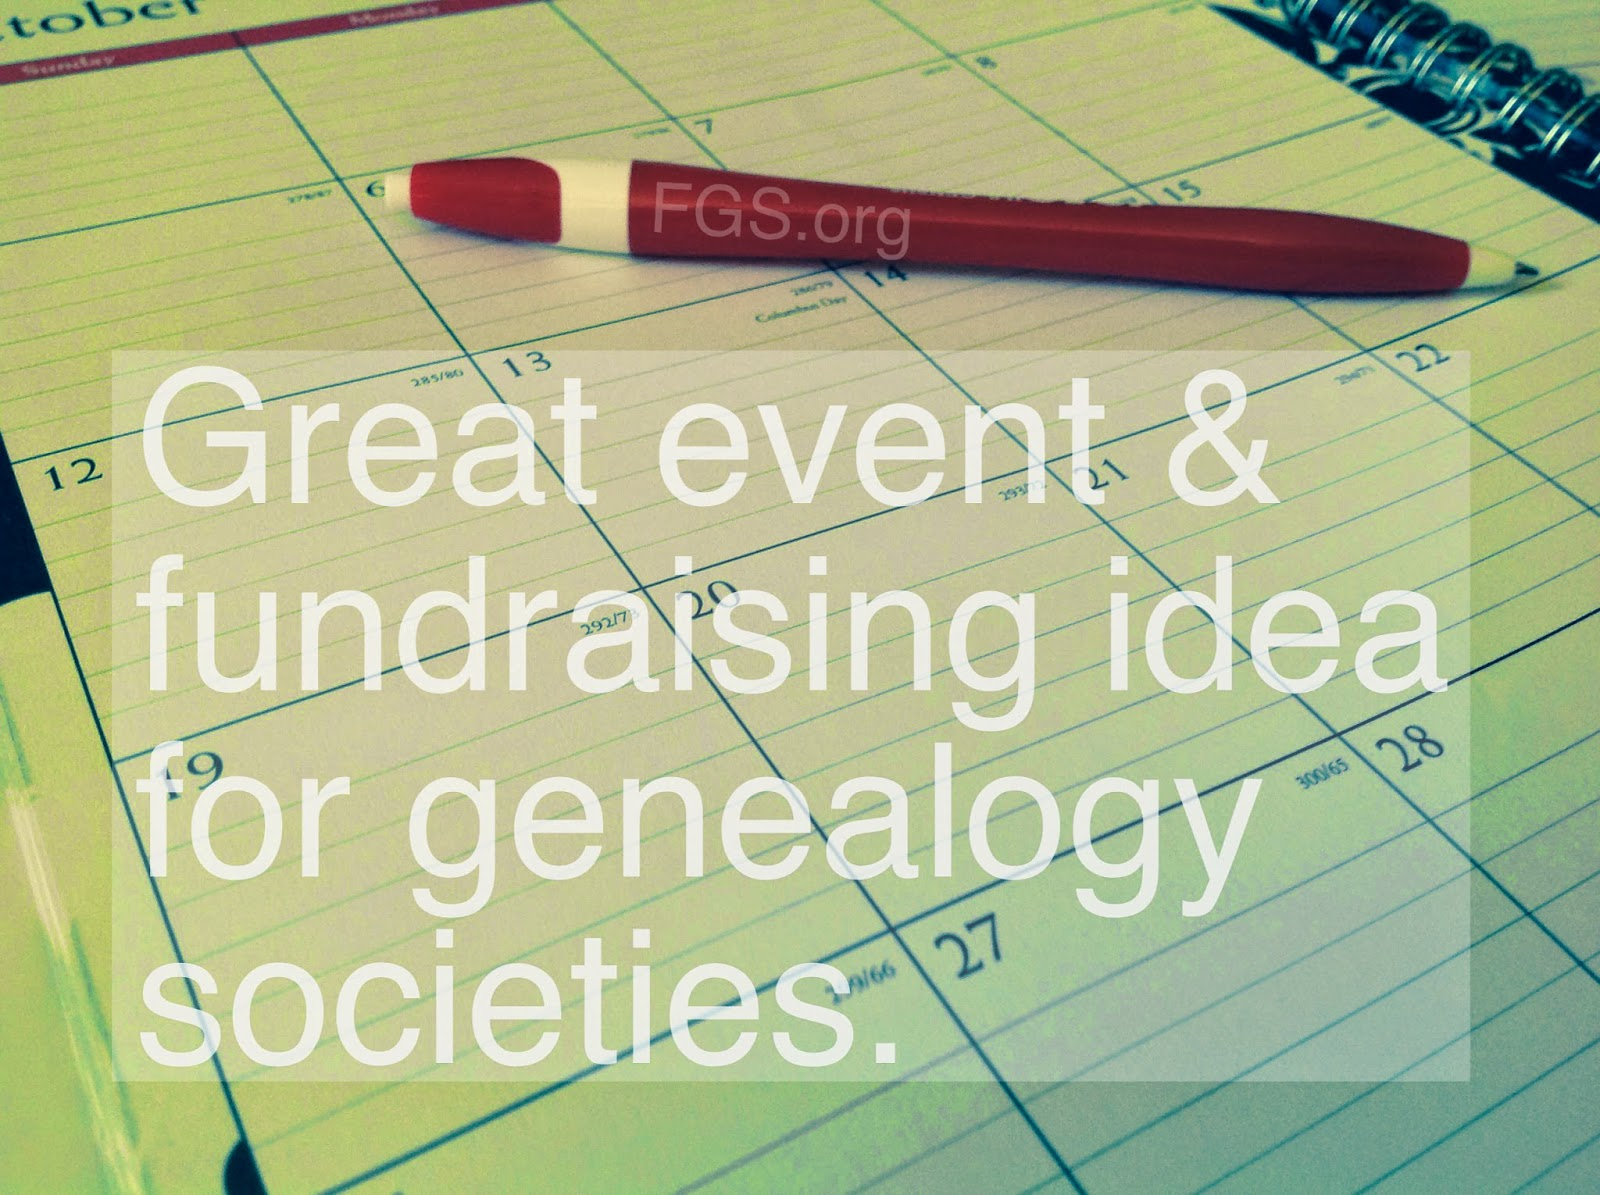 Who Do You Think You Are? Events for Genealogy Societies